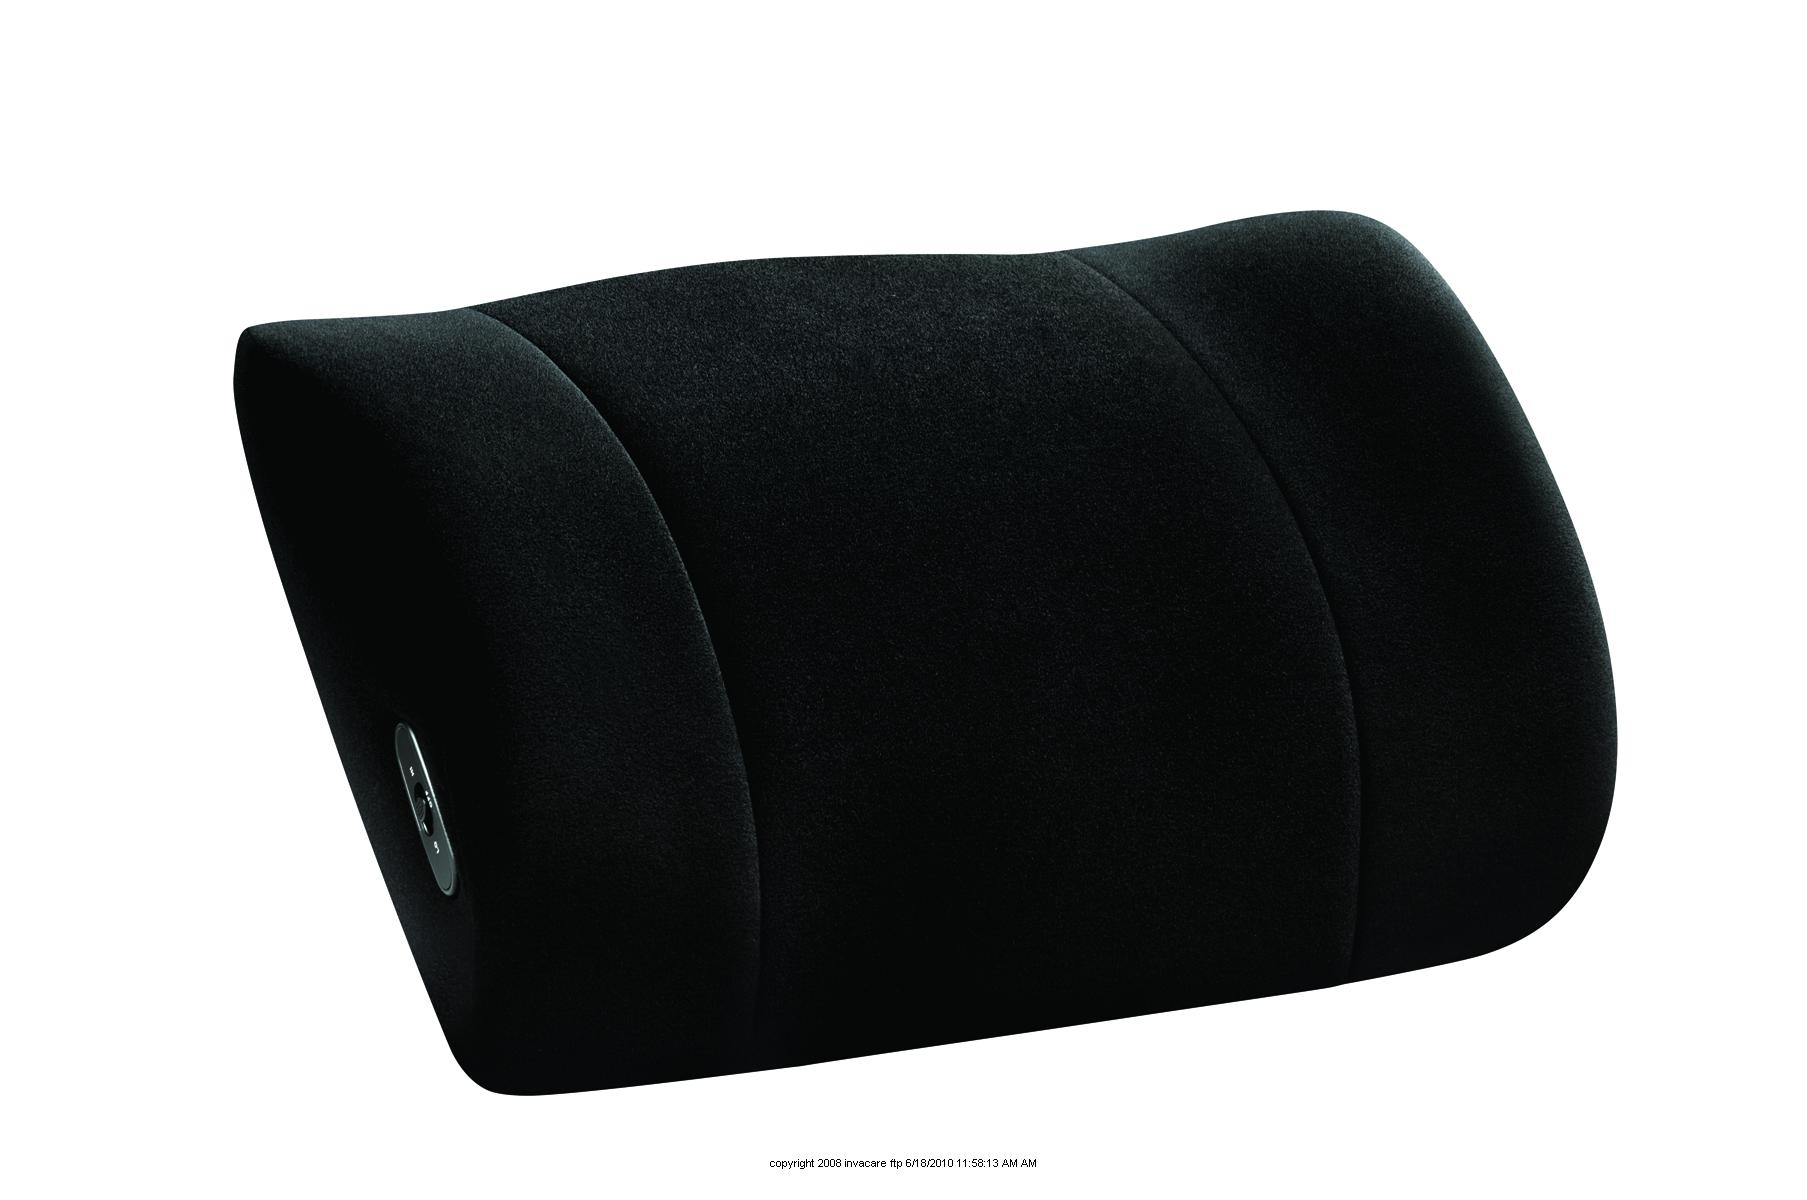 Lumbar Support Cushion with Massage, Lumbar Supt Cush W-Massage -Dc, (1 EACH)